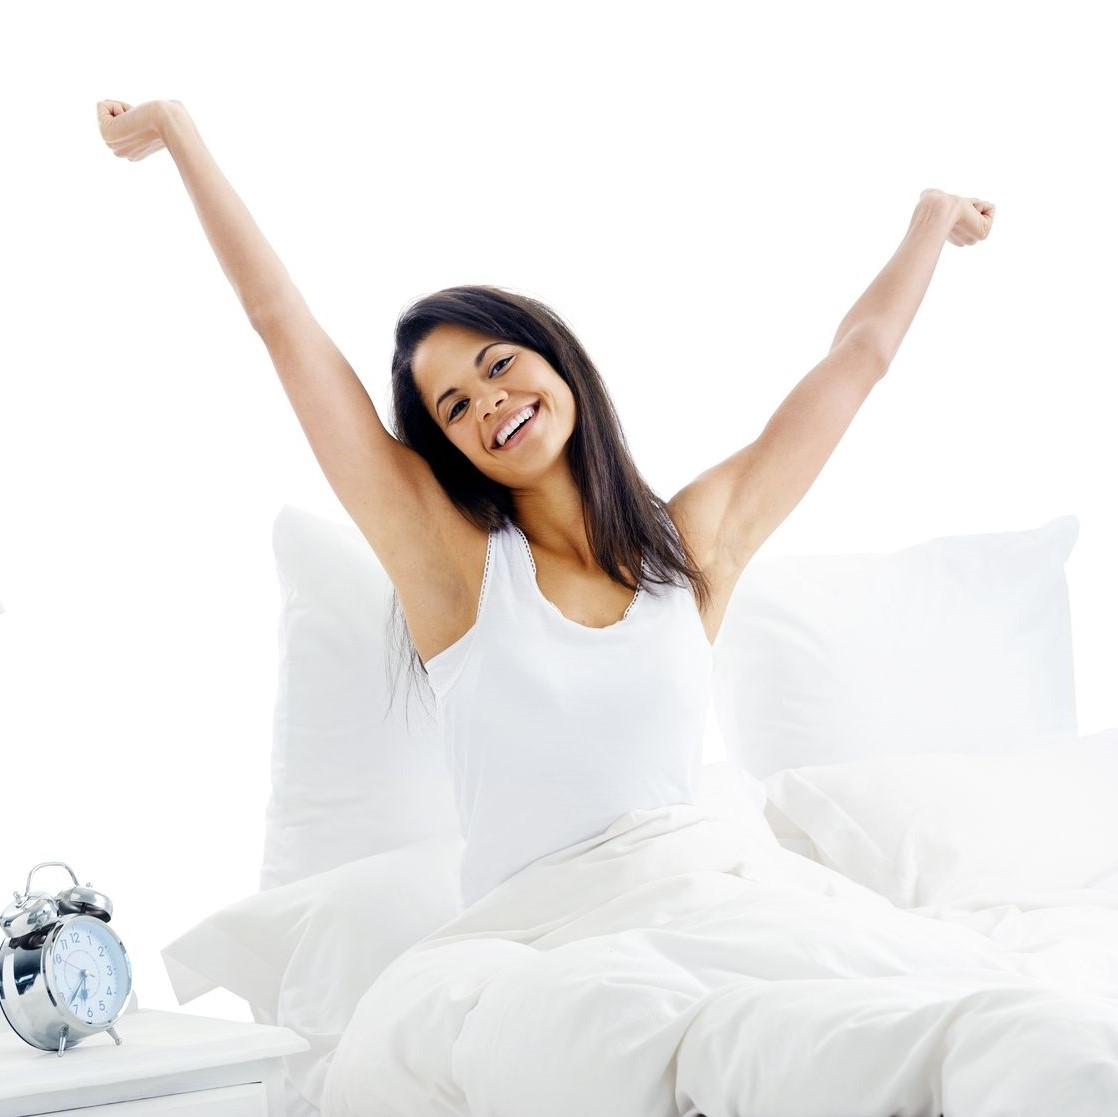 Refreshed mom from good sleep